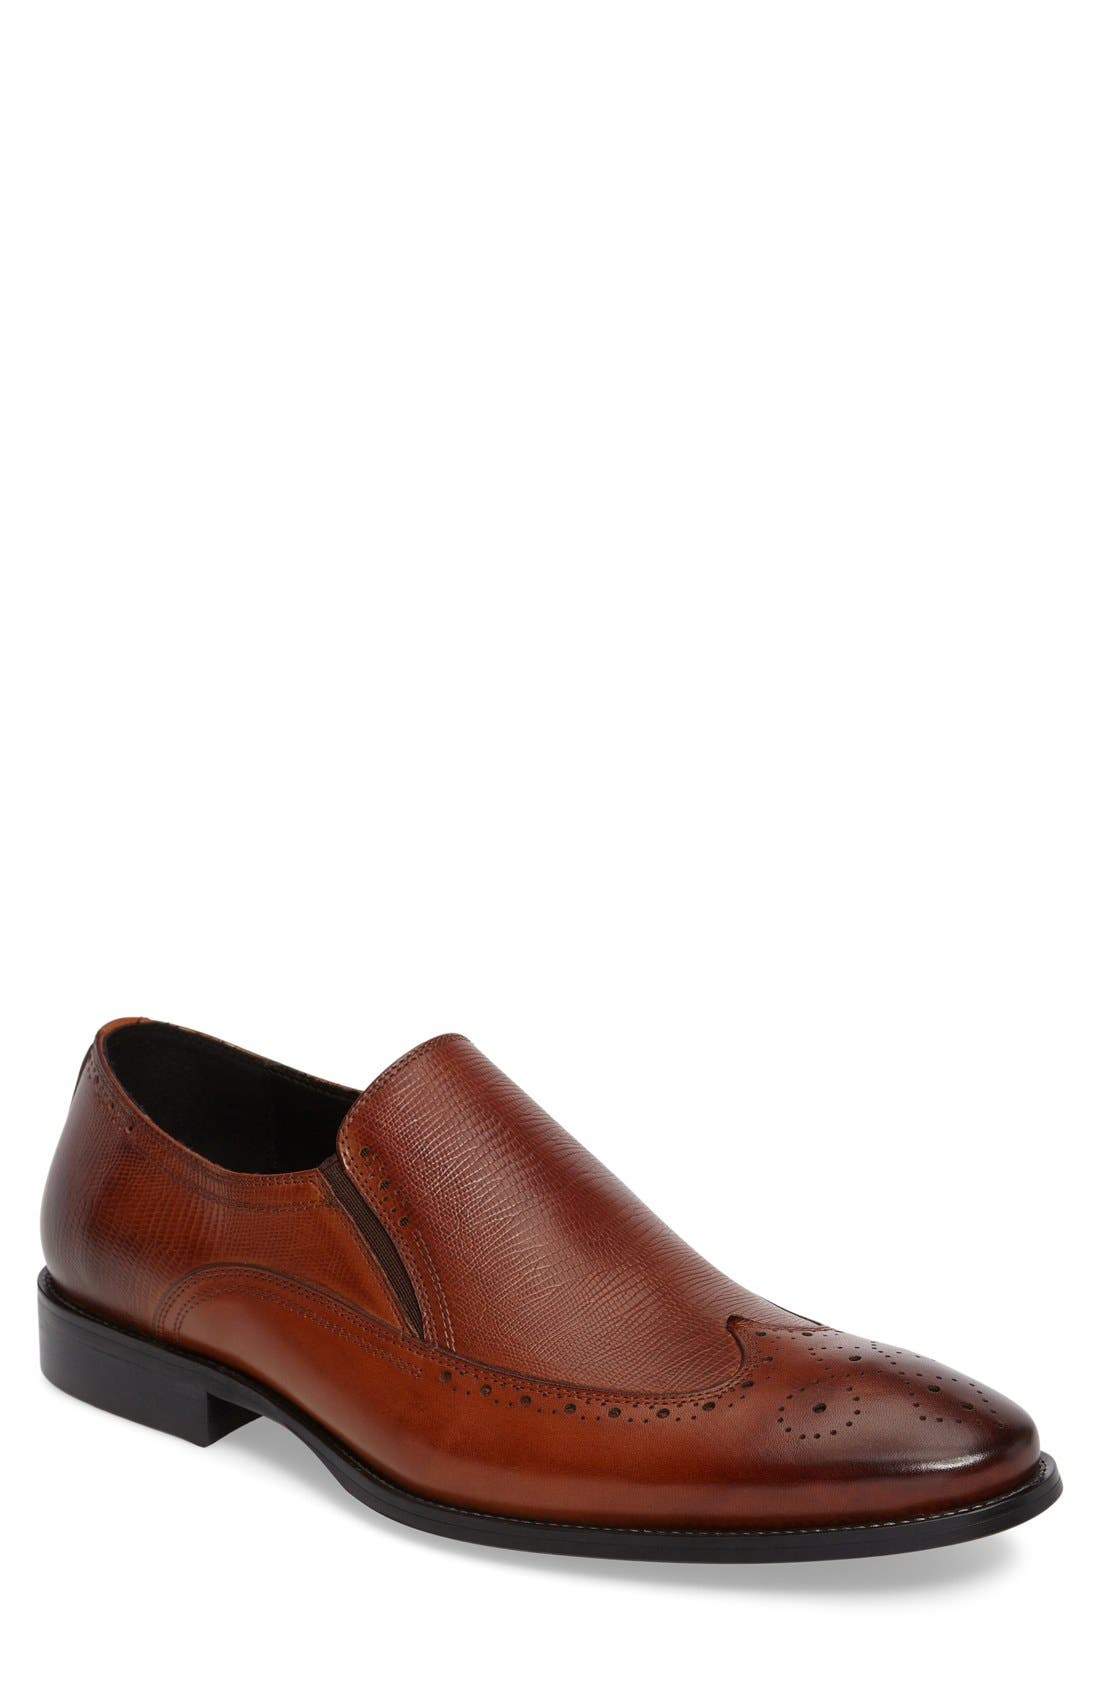 Jump Pissaro Venetian Loafer (Men)